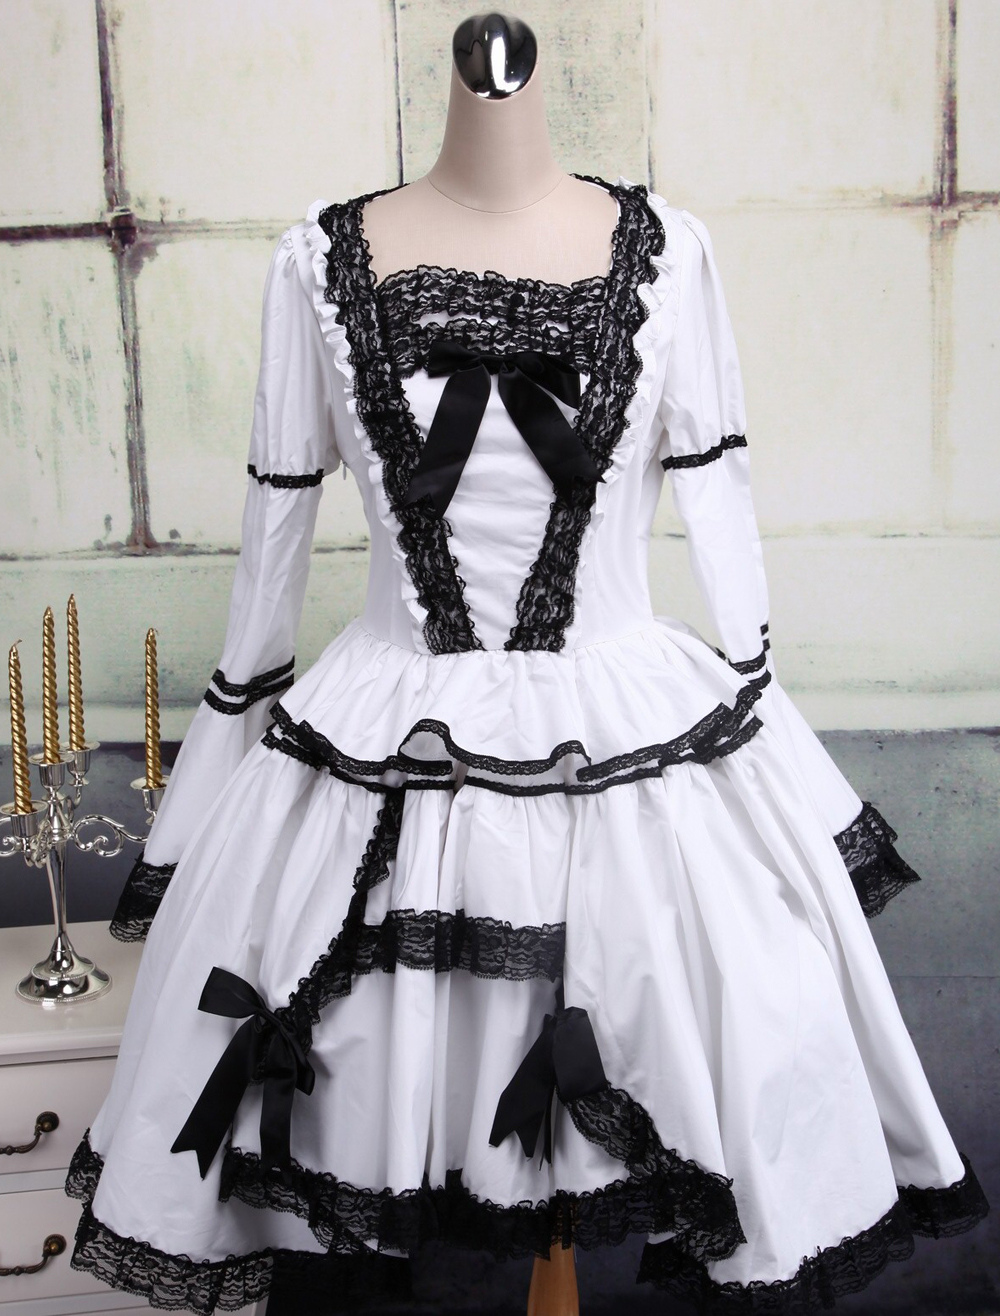 Buy Gothic Lolita Dress OP White Long Sleeves Black Lace Trim Two Layer Lolita One Piece Dress for $94.49 in Milanoo store